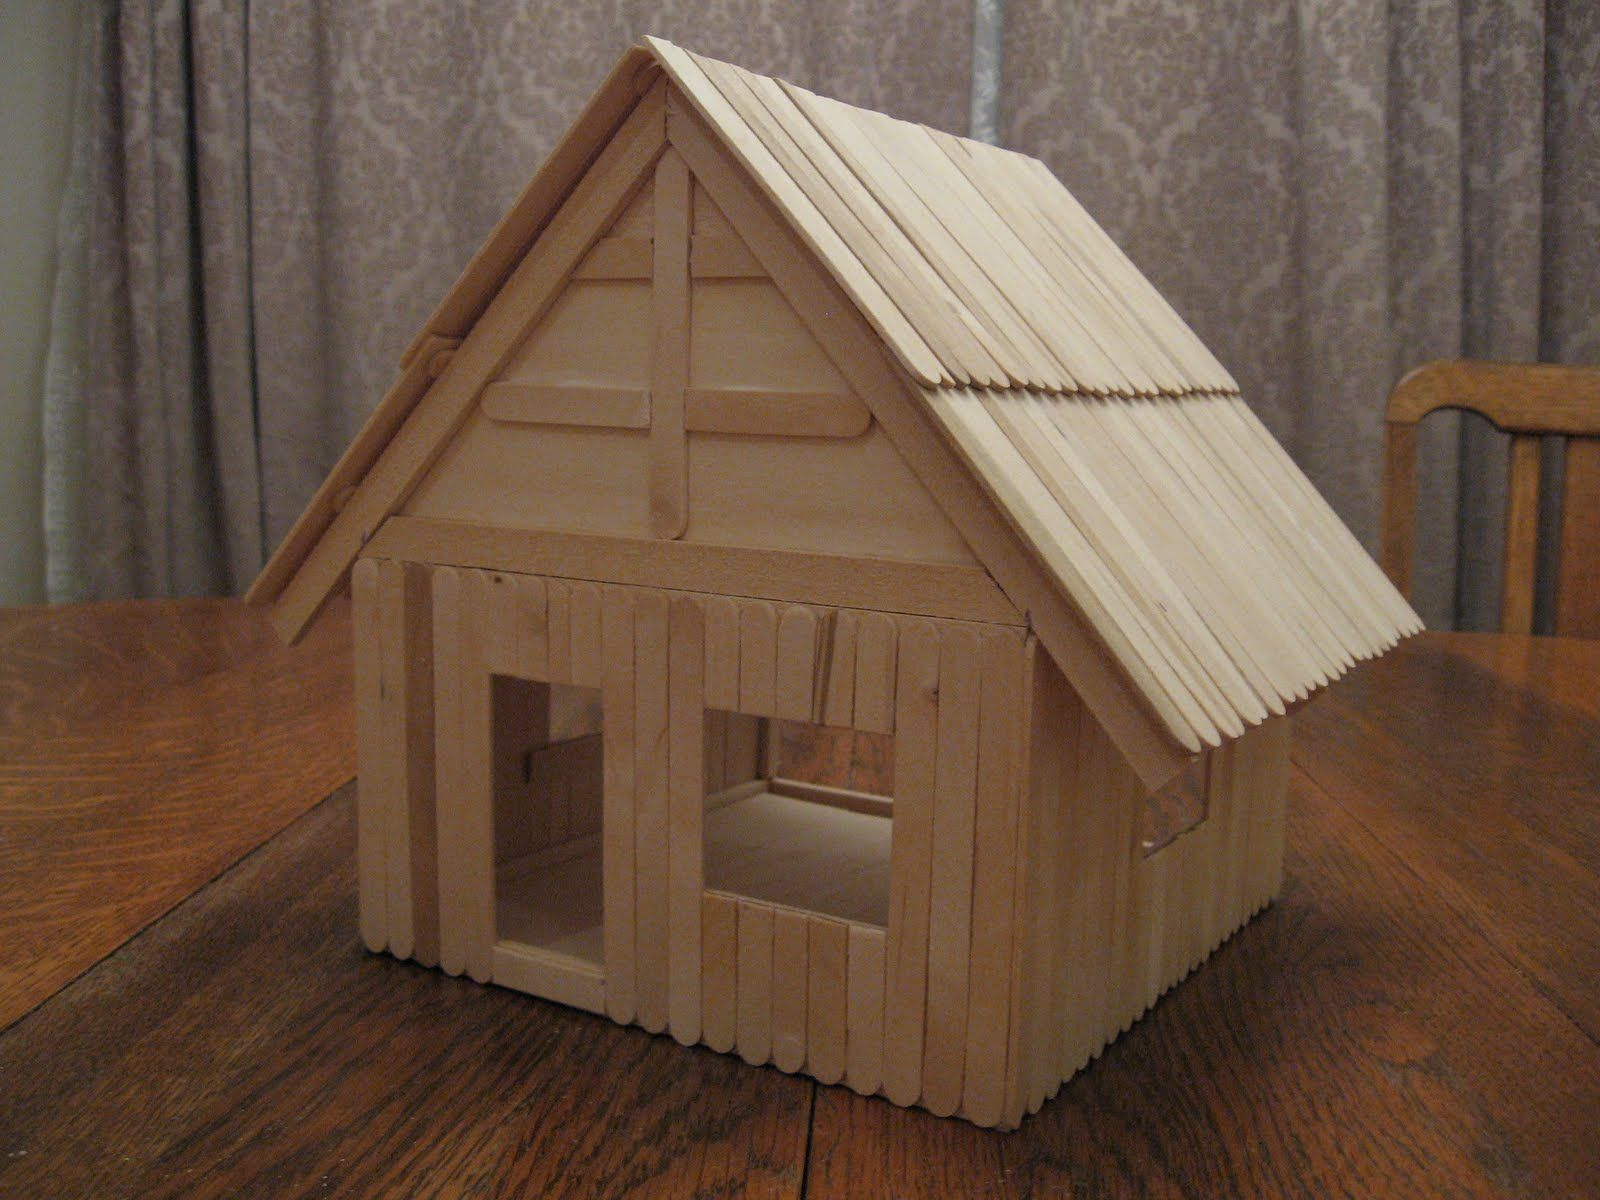 Popsicle stick church craft - Popsicle Stick Building Projects Basswood And Popsicle Stick